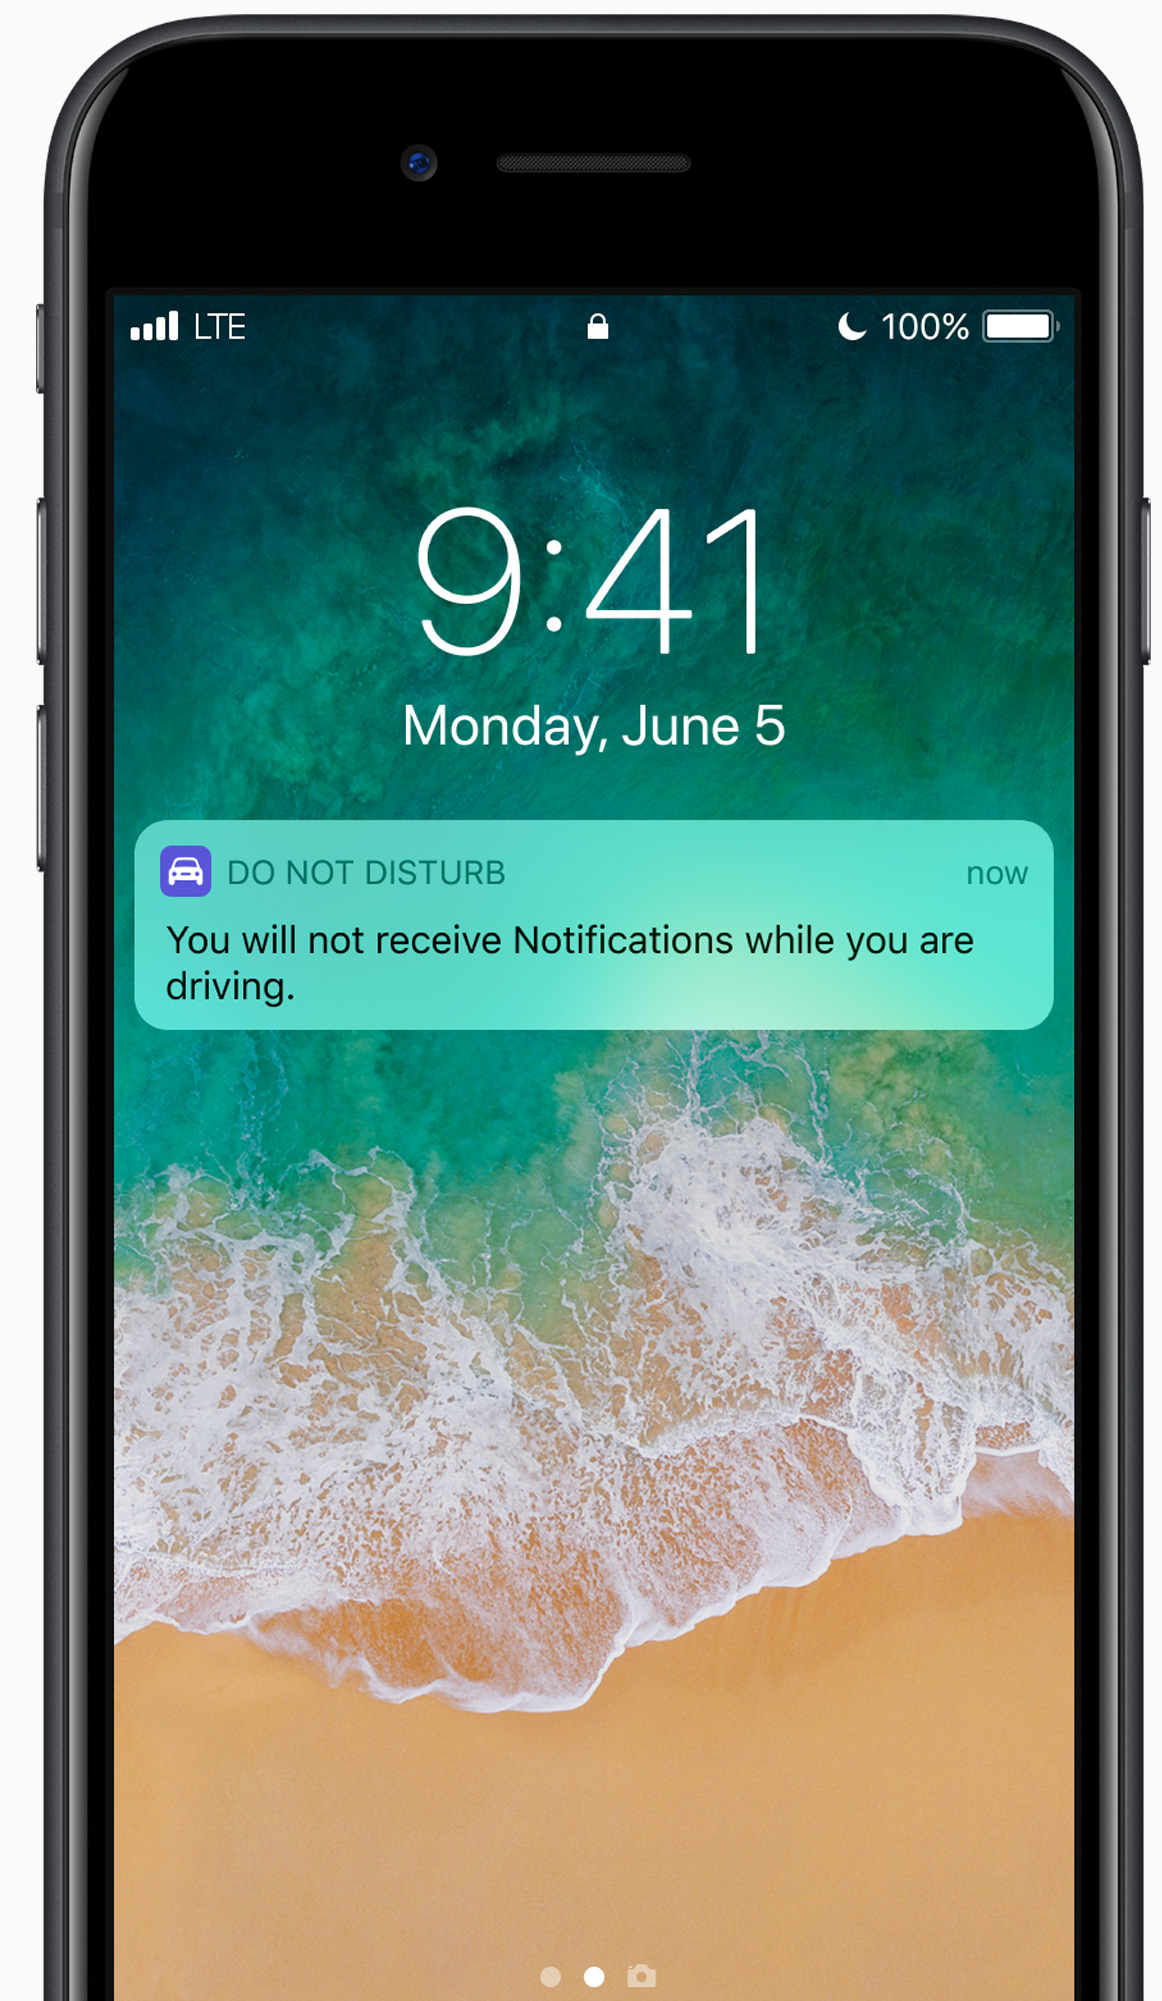 iOS 11 - Do not disturb while driving